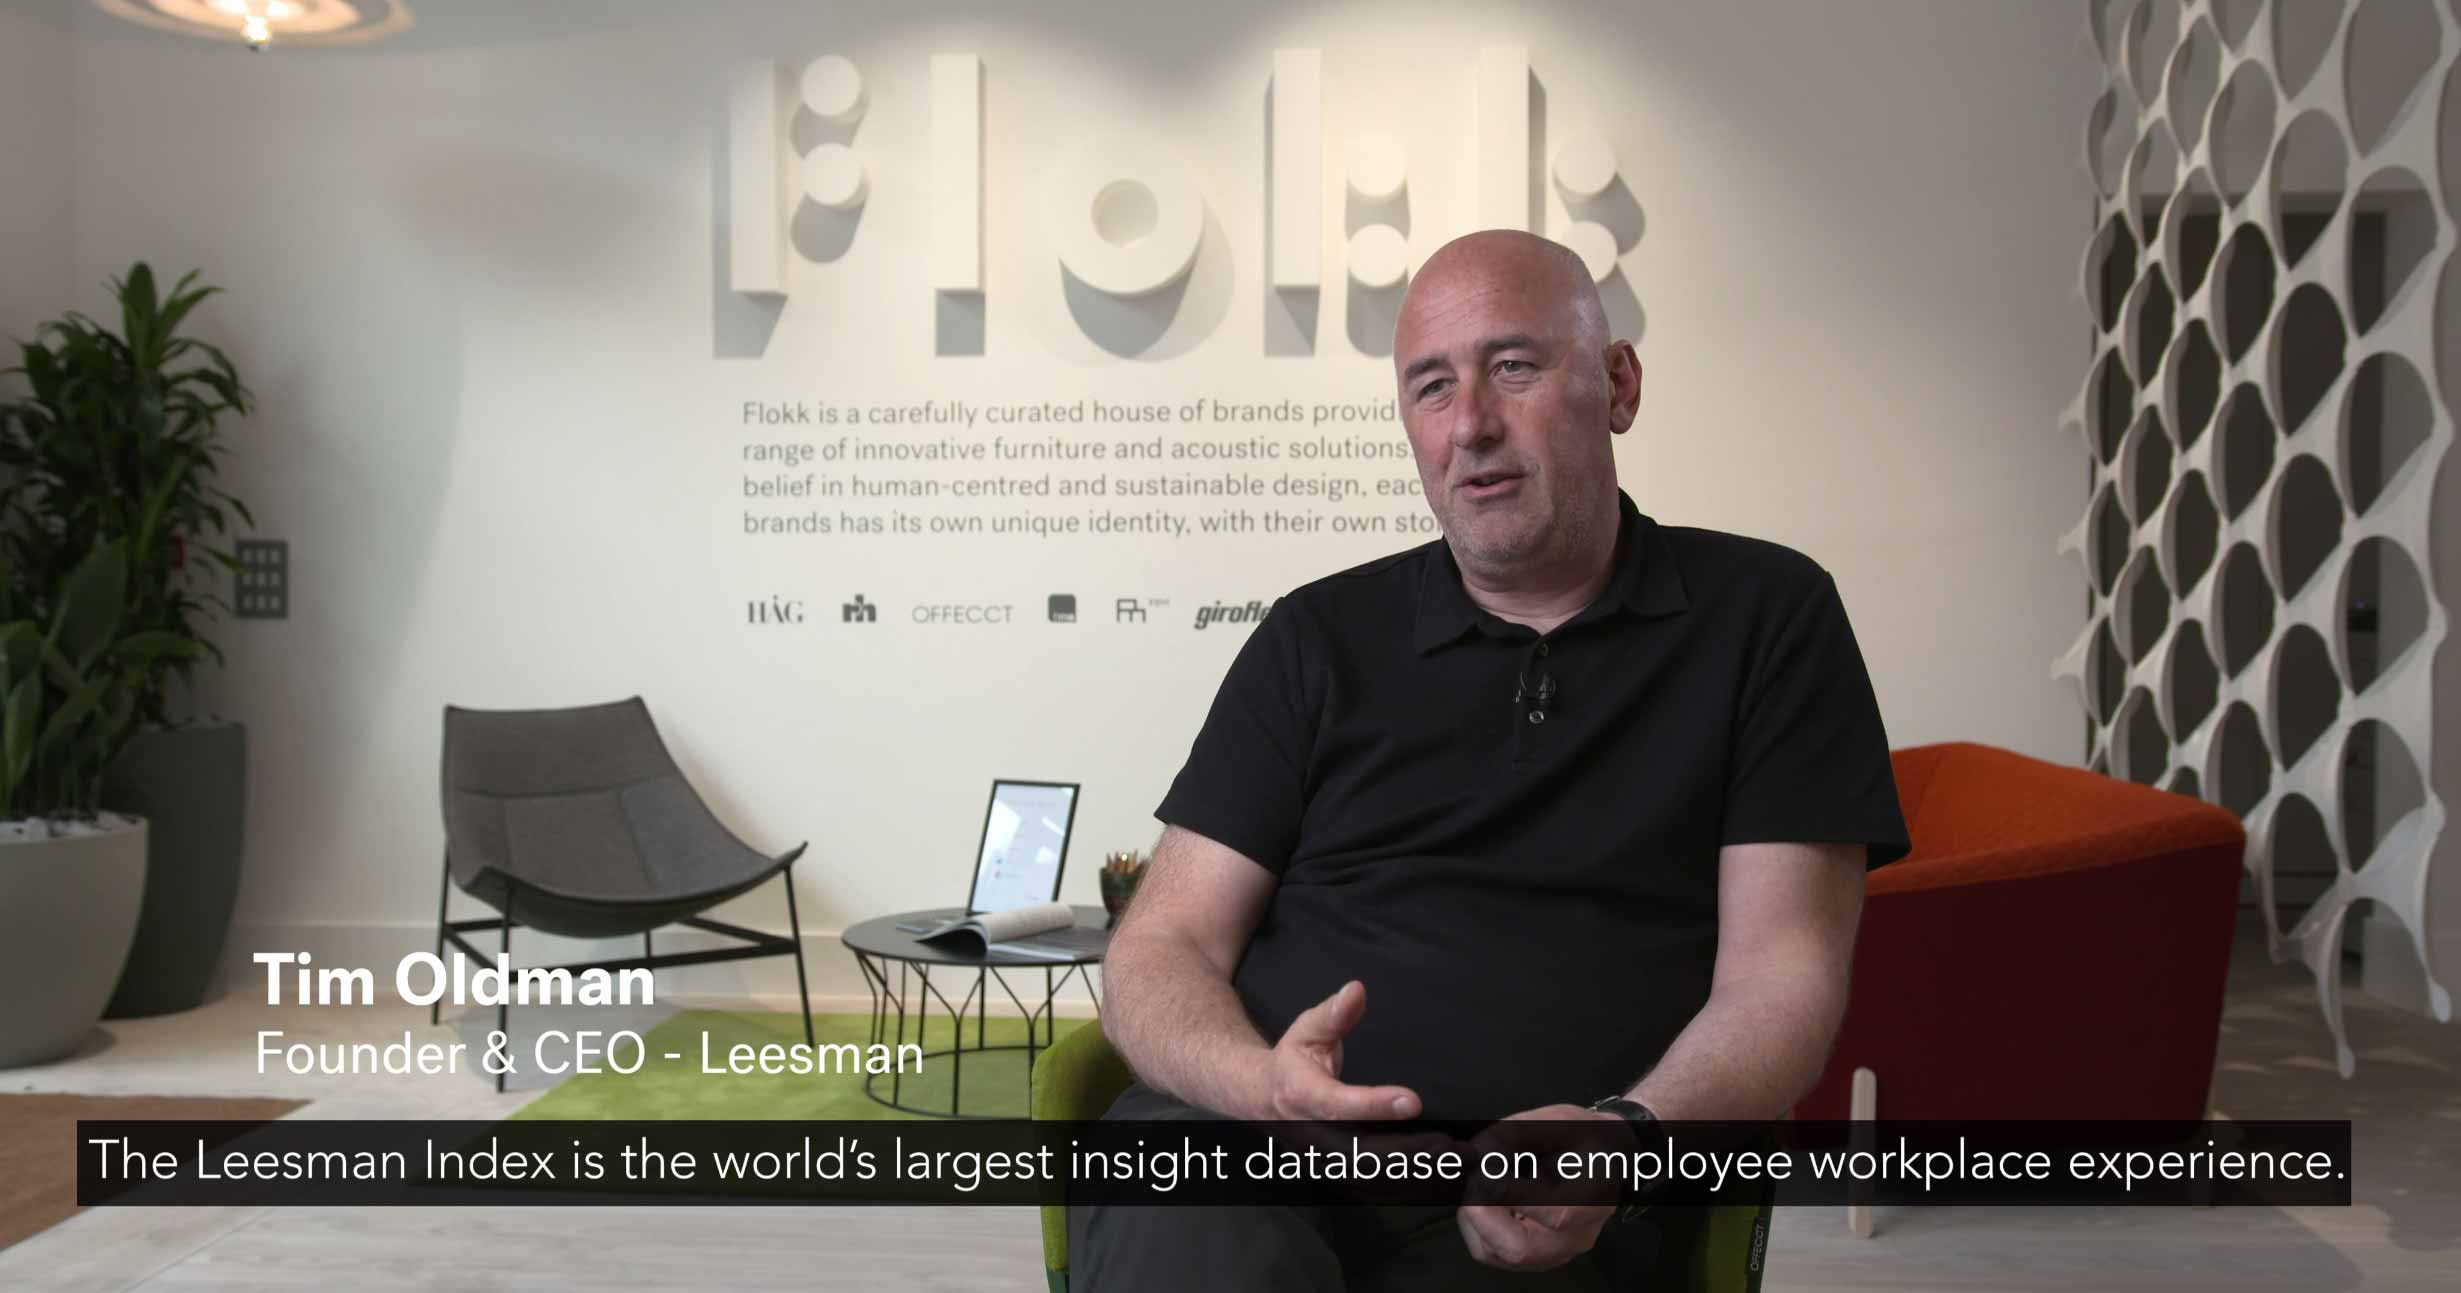 how big data effects workplace design with leesman index - interview with Tim Oldman